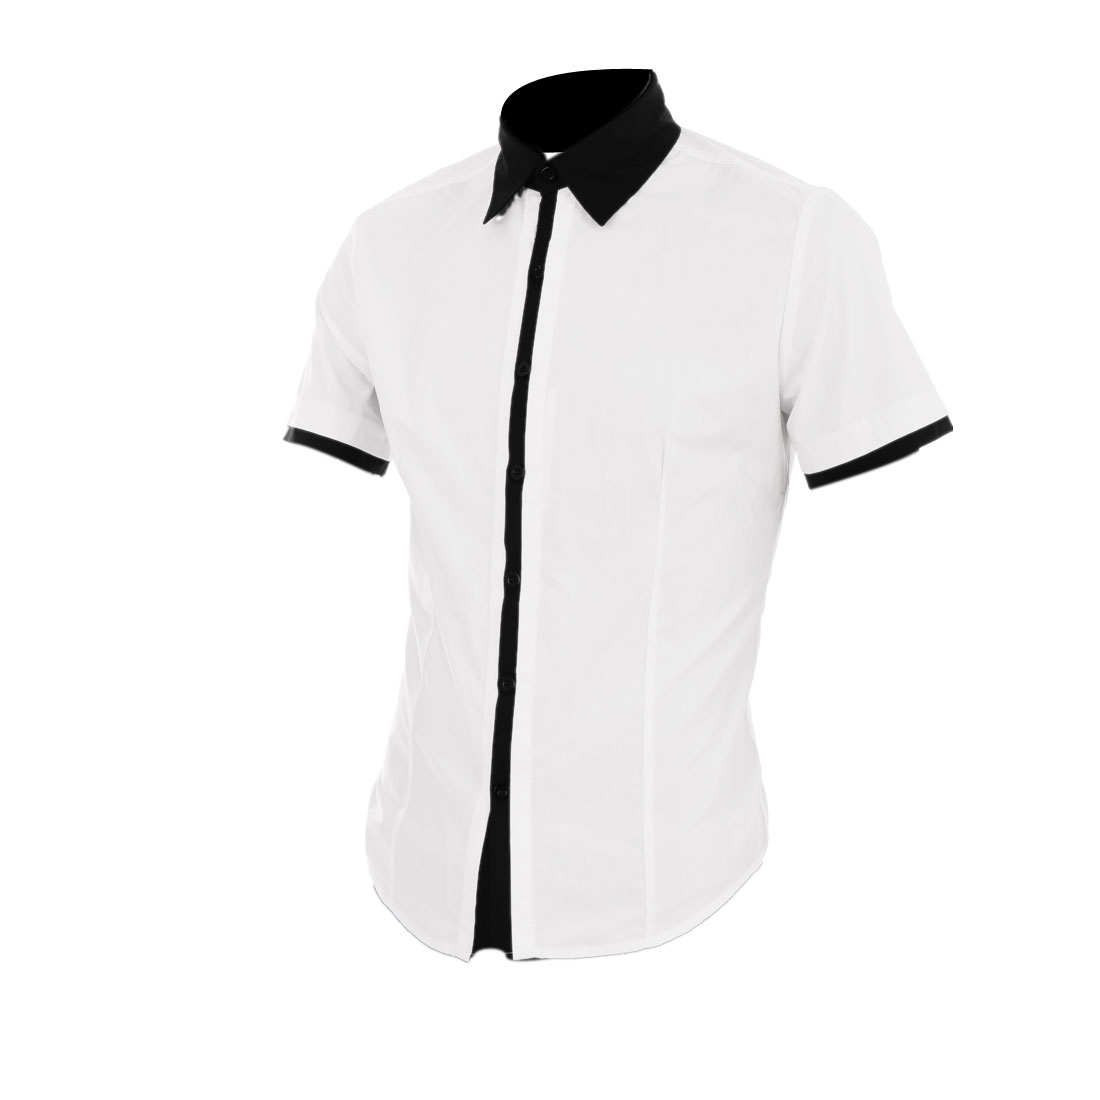 Men Short Sleeve Round Hem Summer Shirt White M